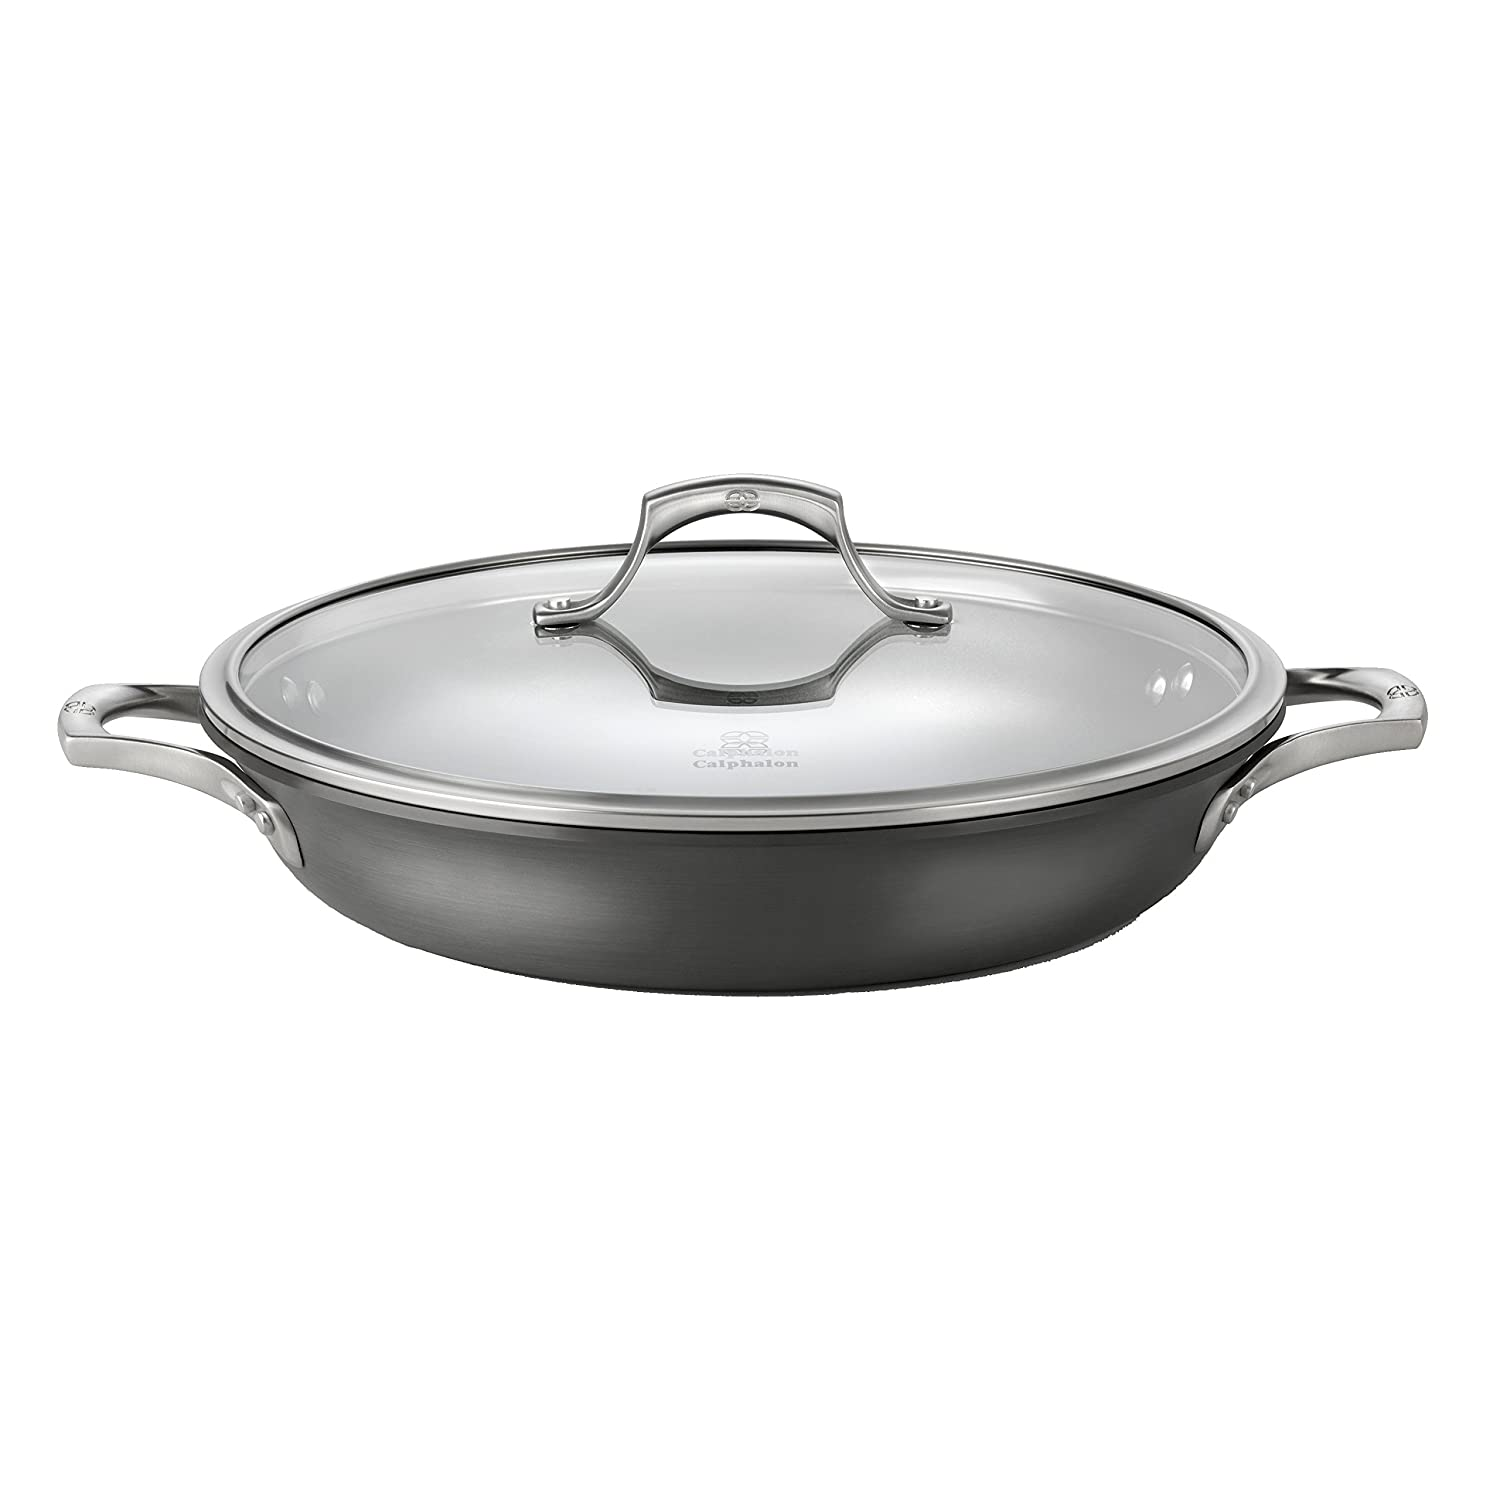 Calphalon Unison Nonstick, Everyday Pan, 12-inch